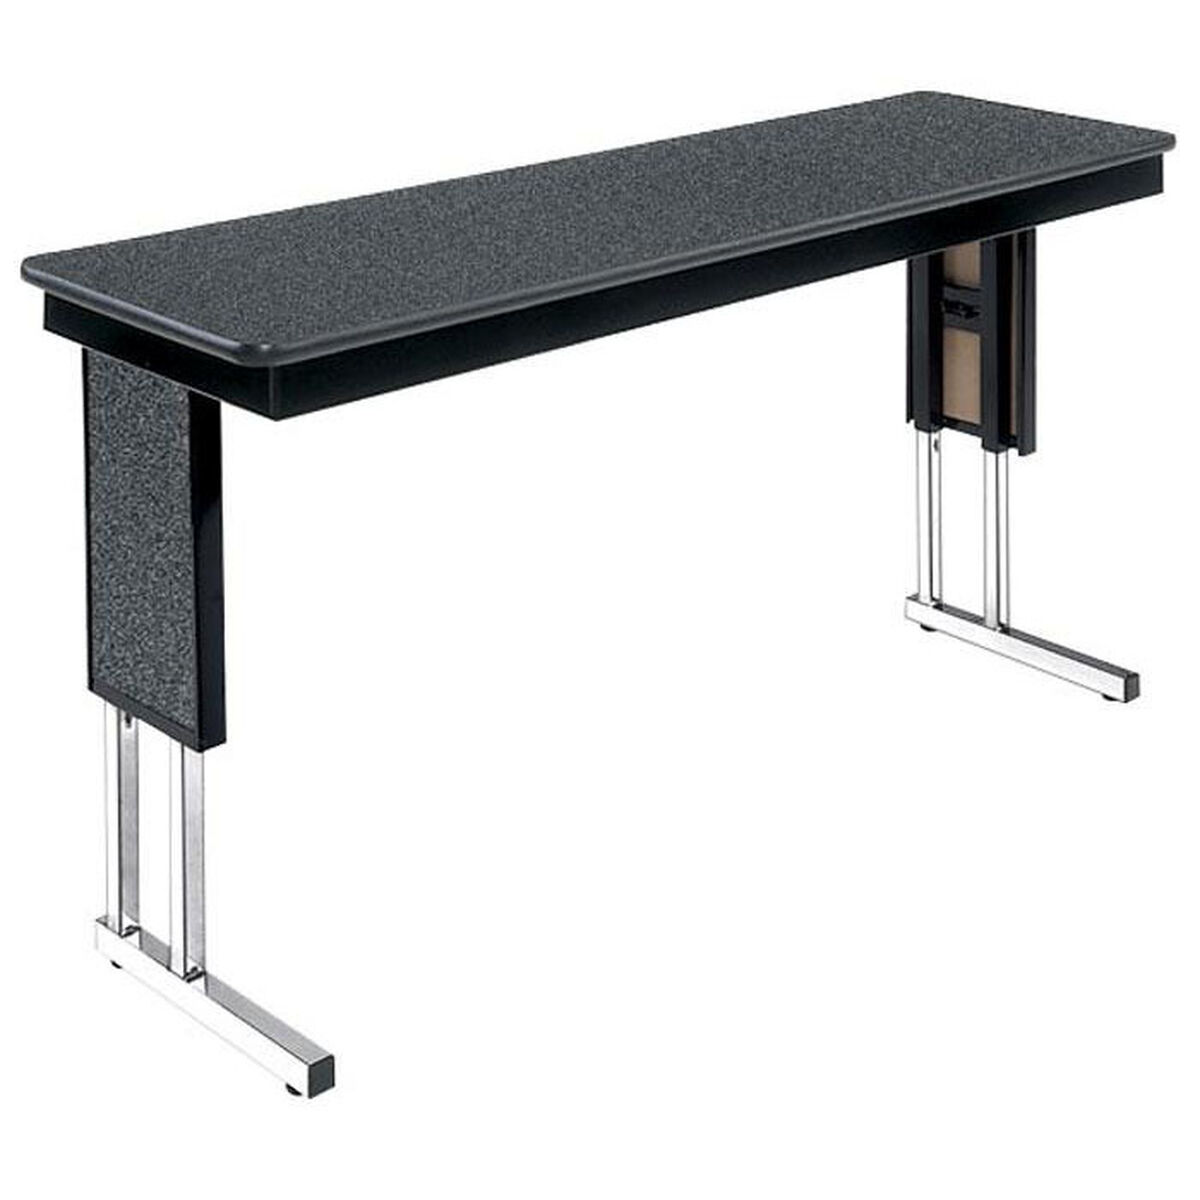 Symposium Training Table SYJL SchoolFurnitureLesscom - Adjustable training table